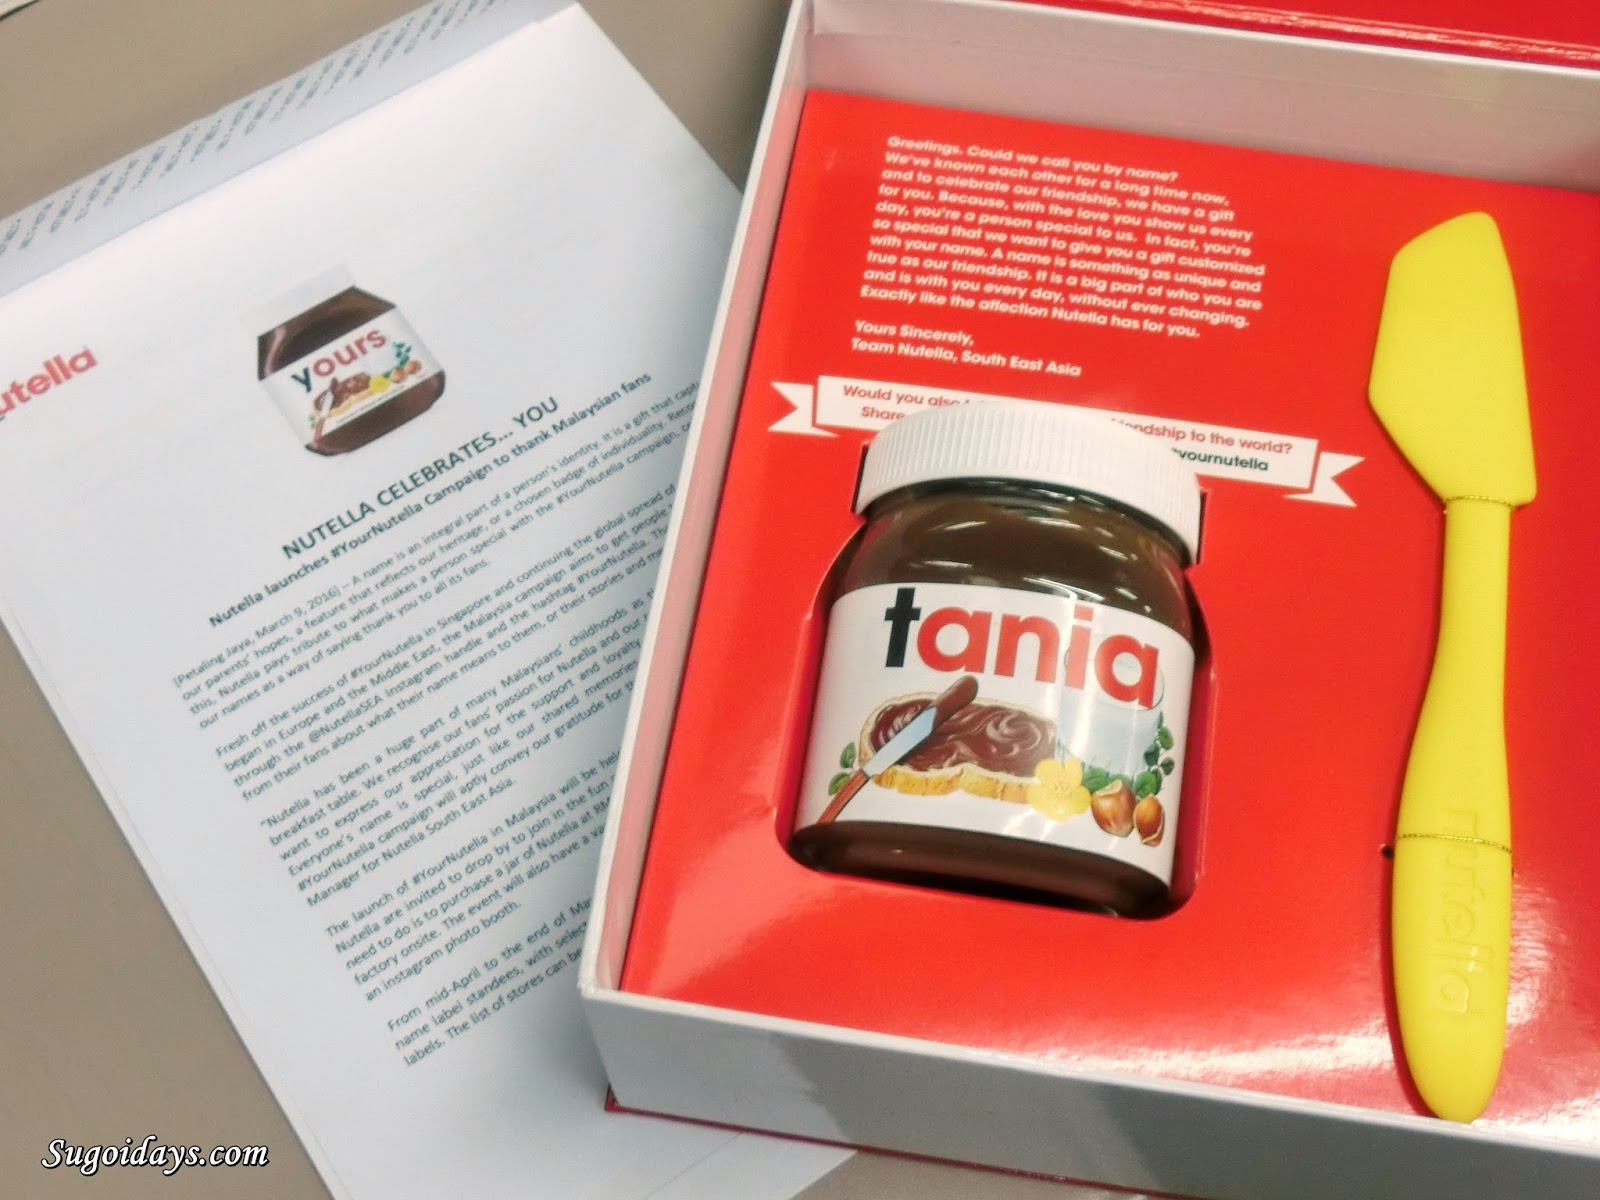 Sugoi Days: #YourNutella: Fancy Owning Your Own Customised